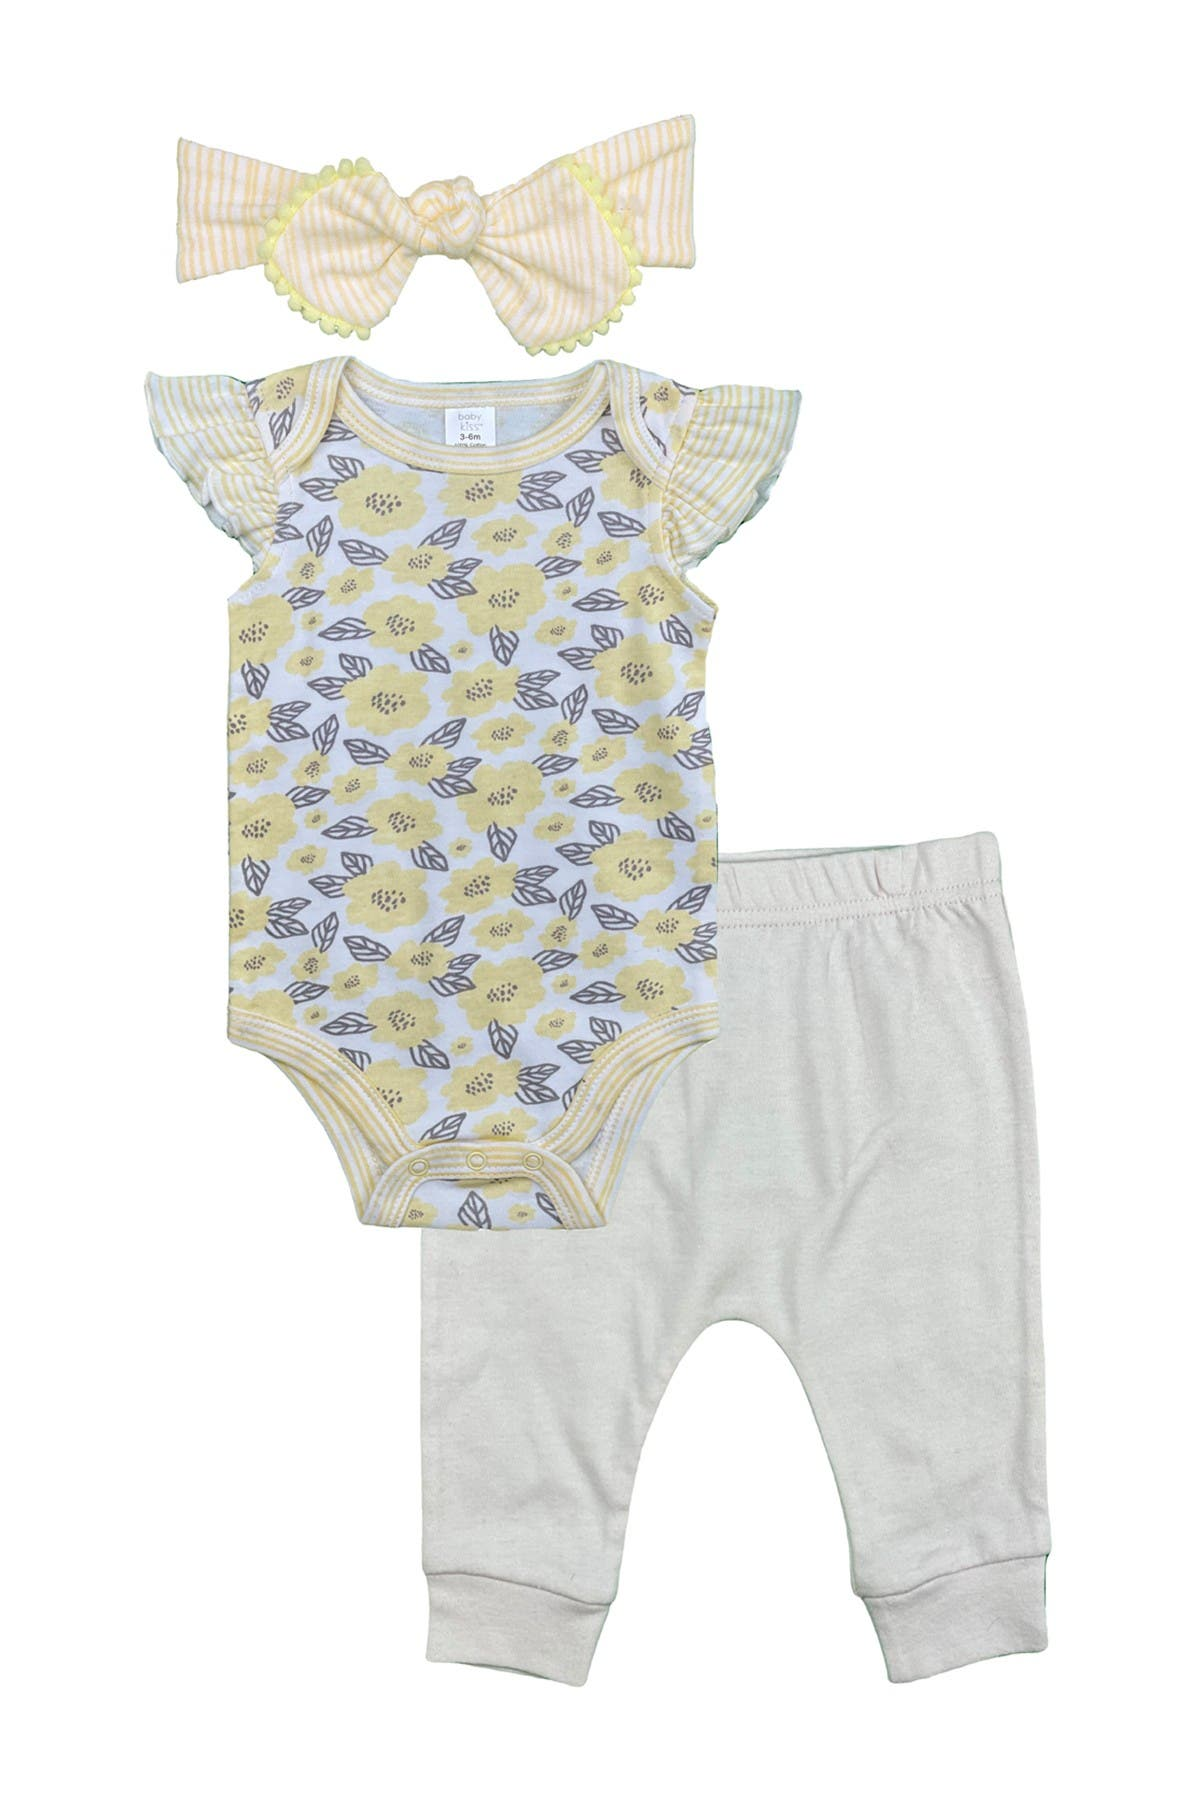 Image of Modern Baby Bodysuit, Pants & Headband